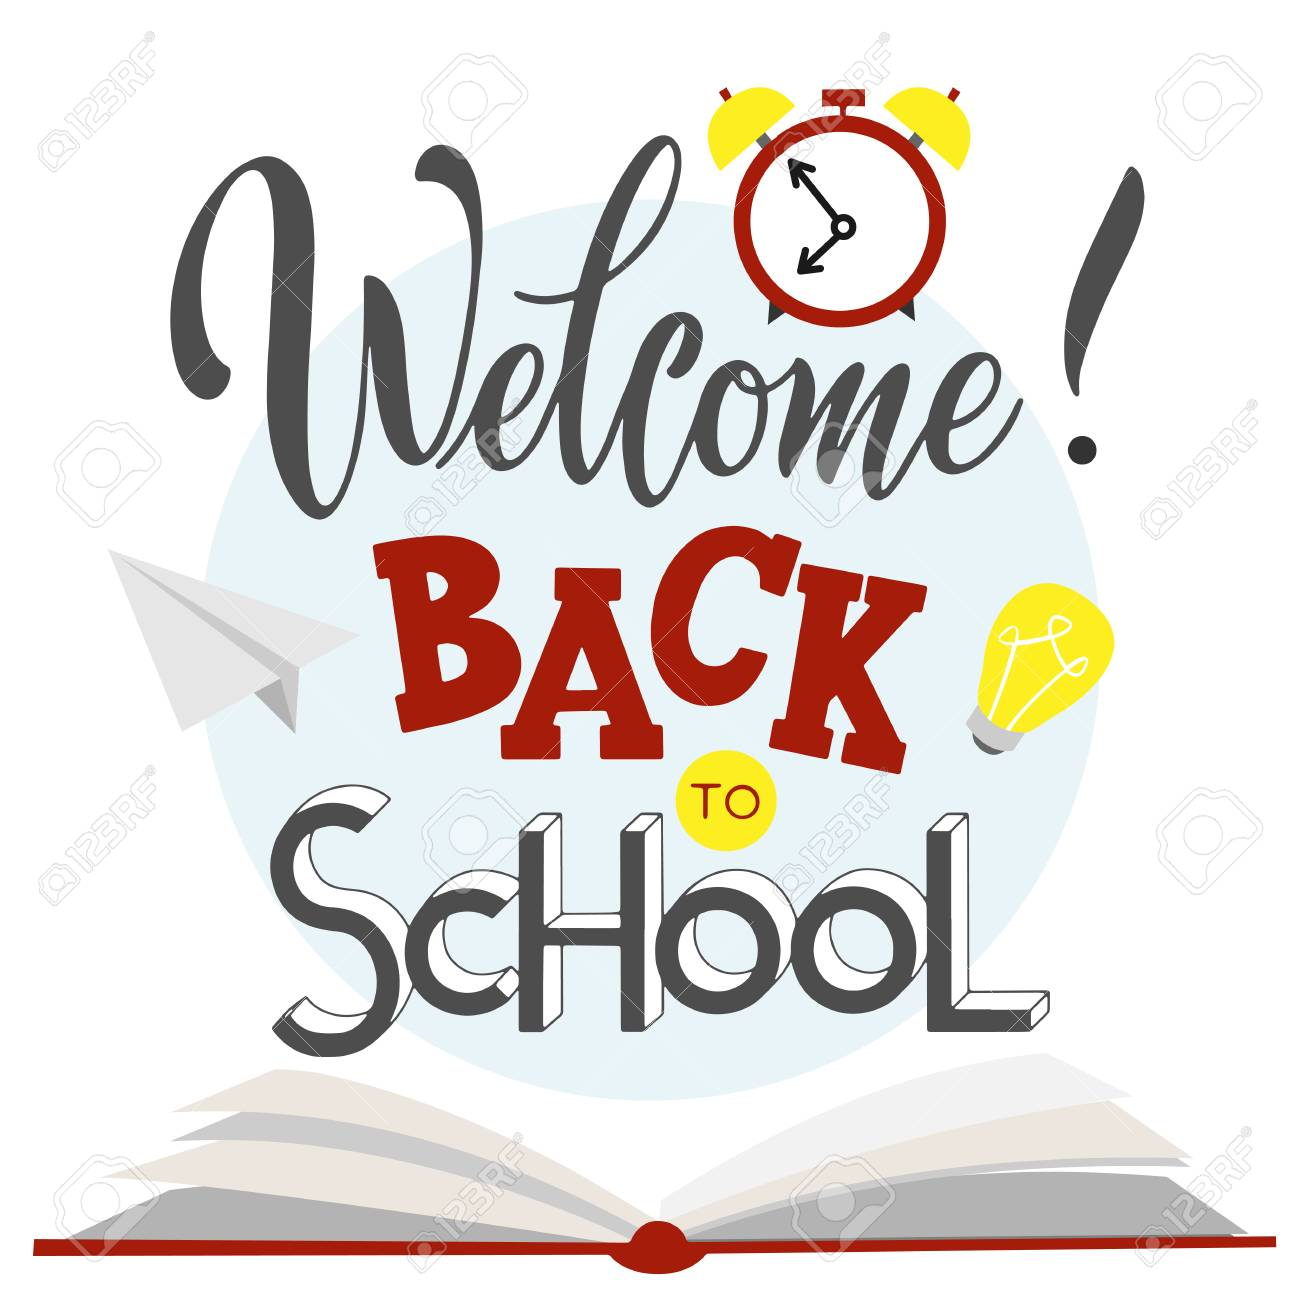 Back to school hand drawn lettering. Elements for greeting card, poster, banners. Notebook and sticker design - 114839220